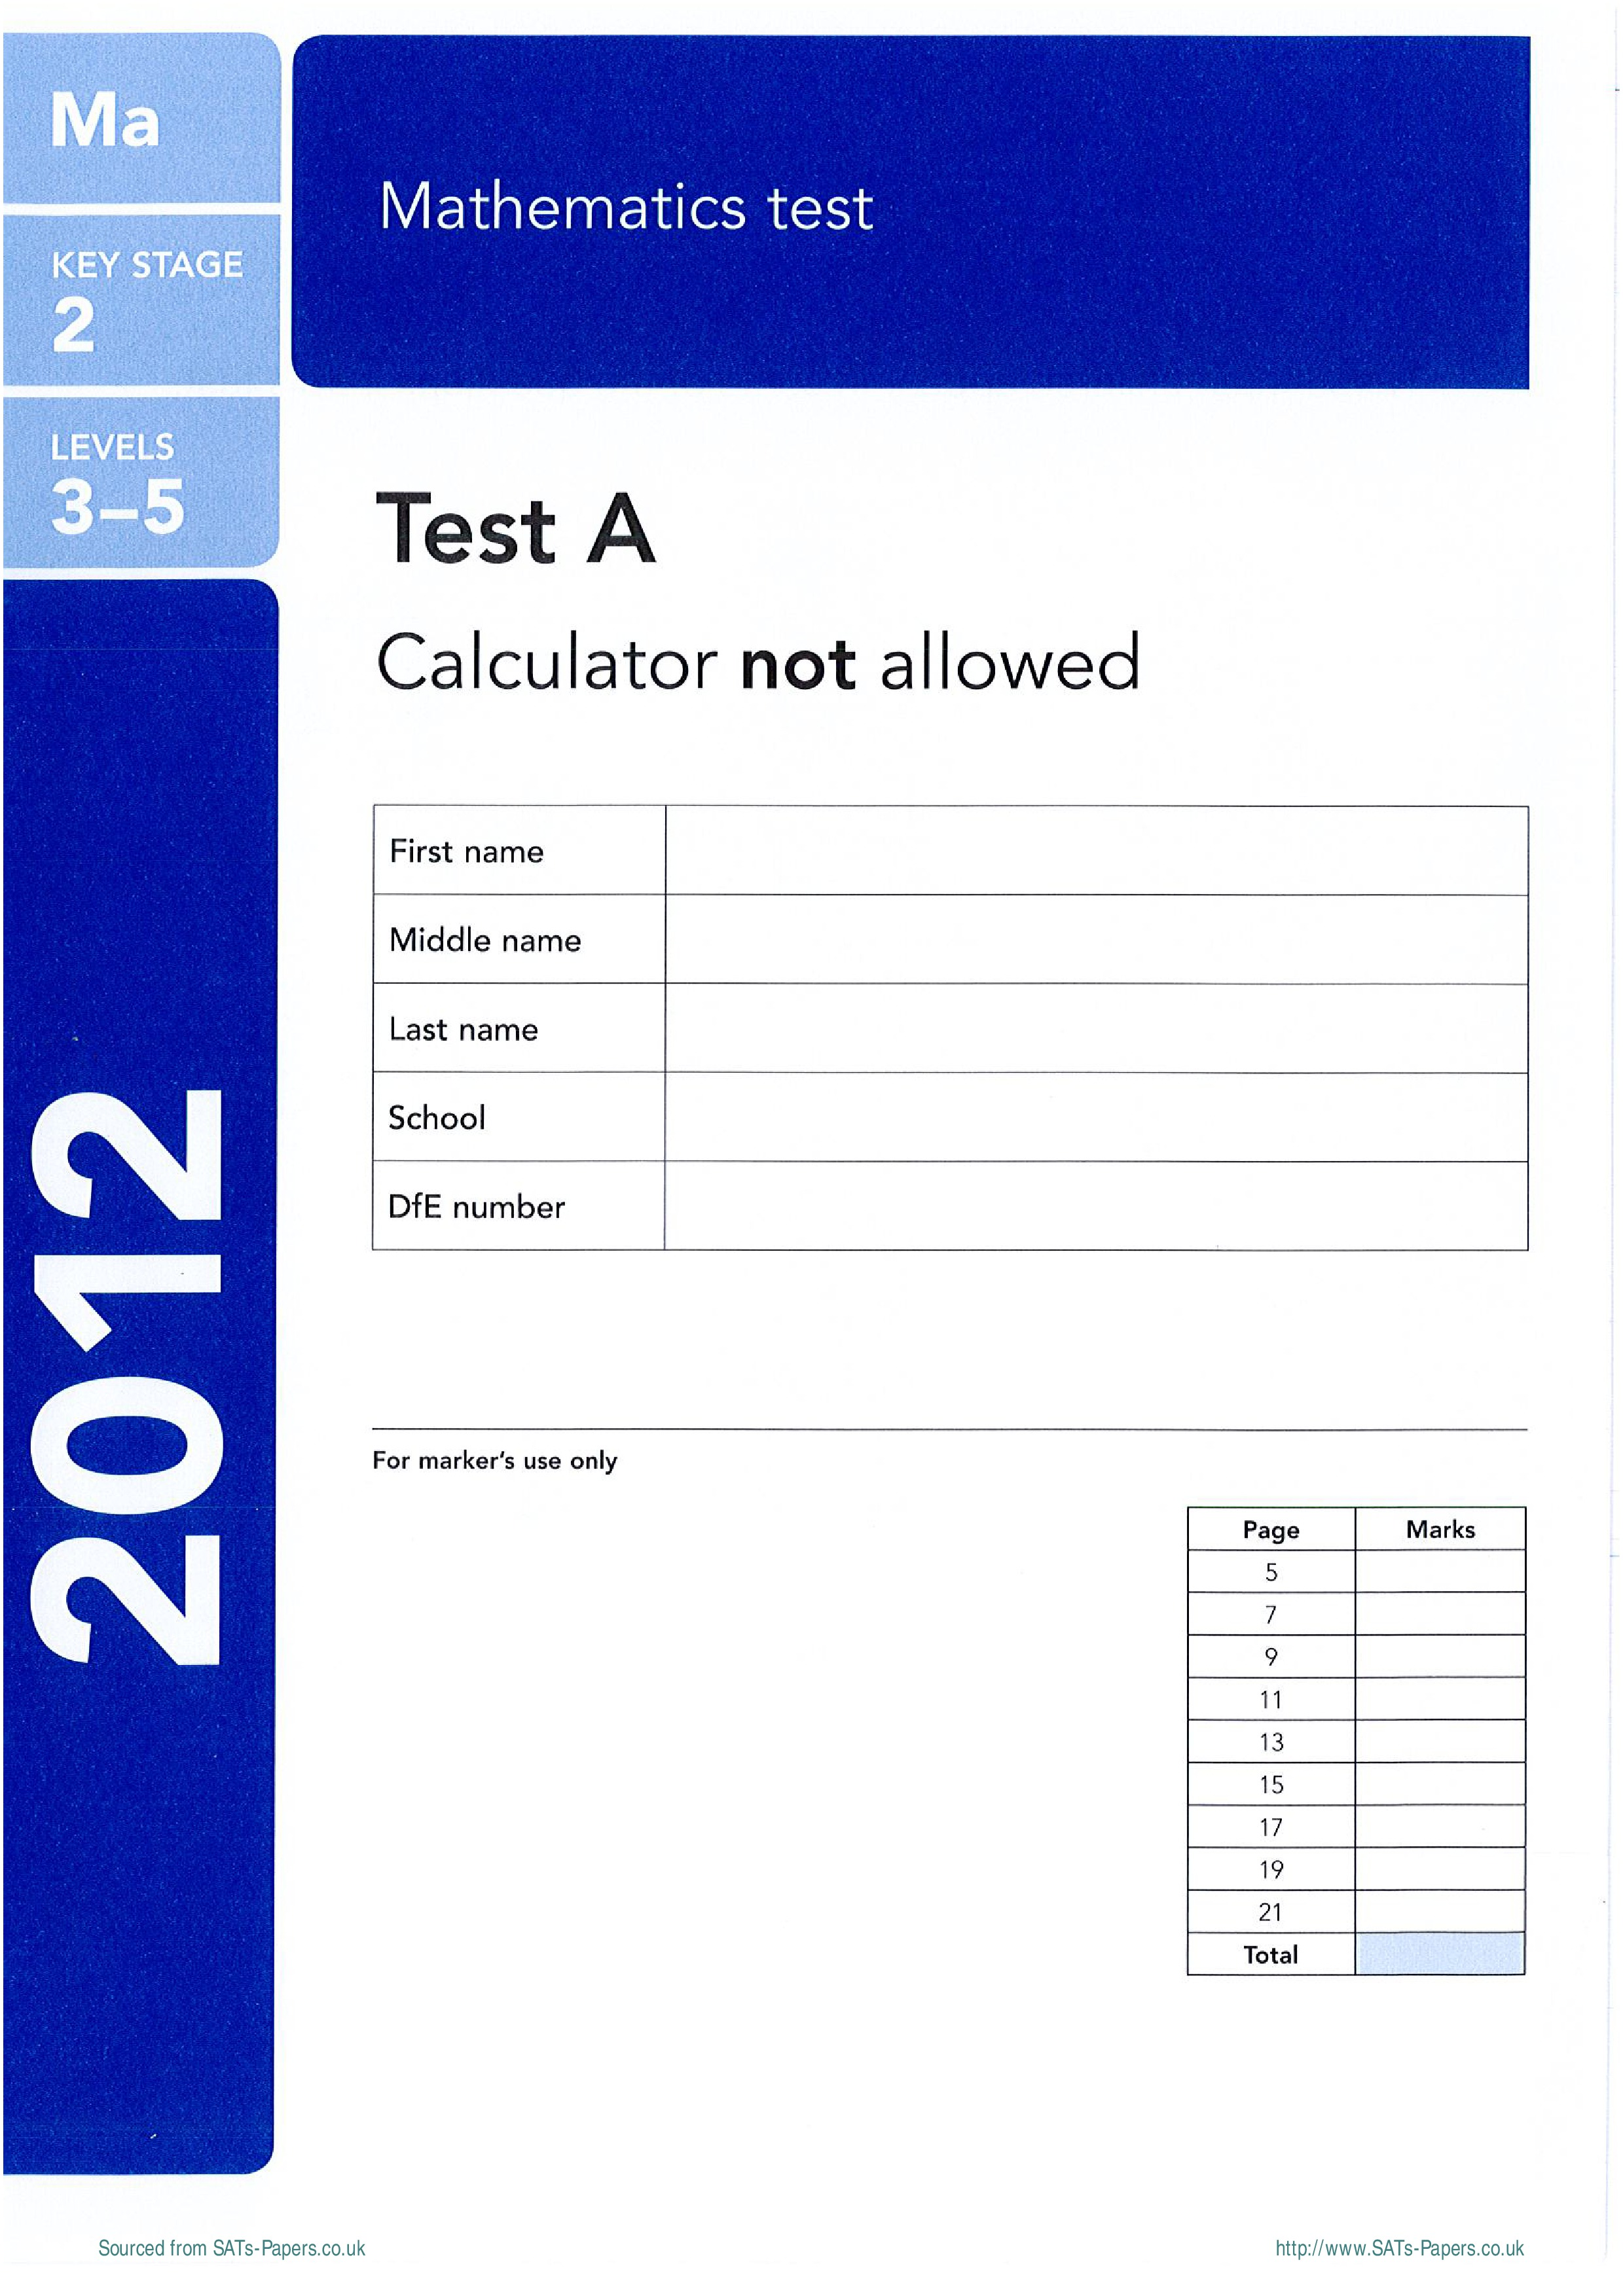 FREE Worksheets: KS2 Maths Test-a 2012 SATs Papers | The ...